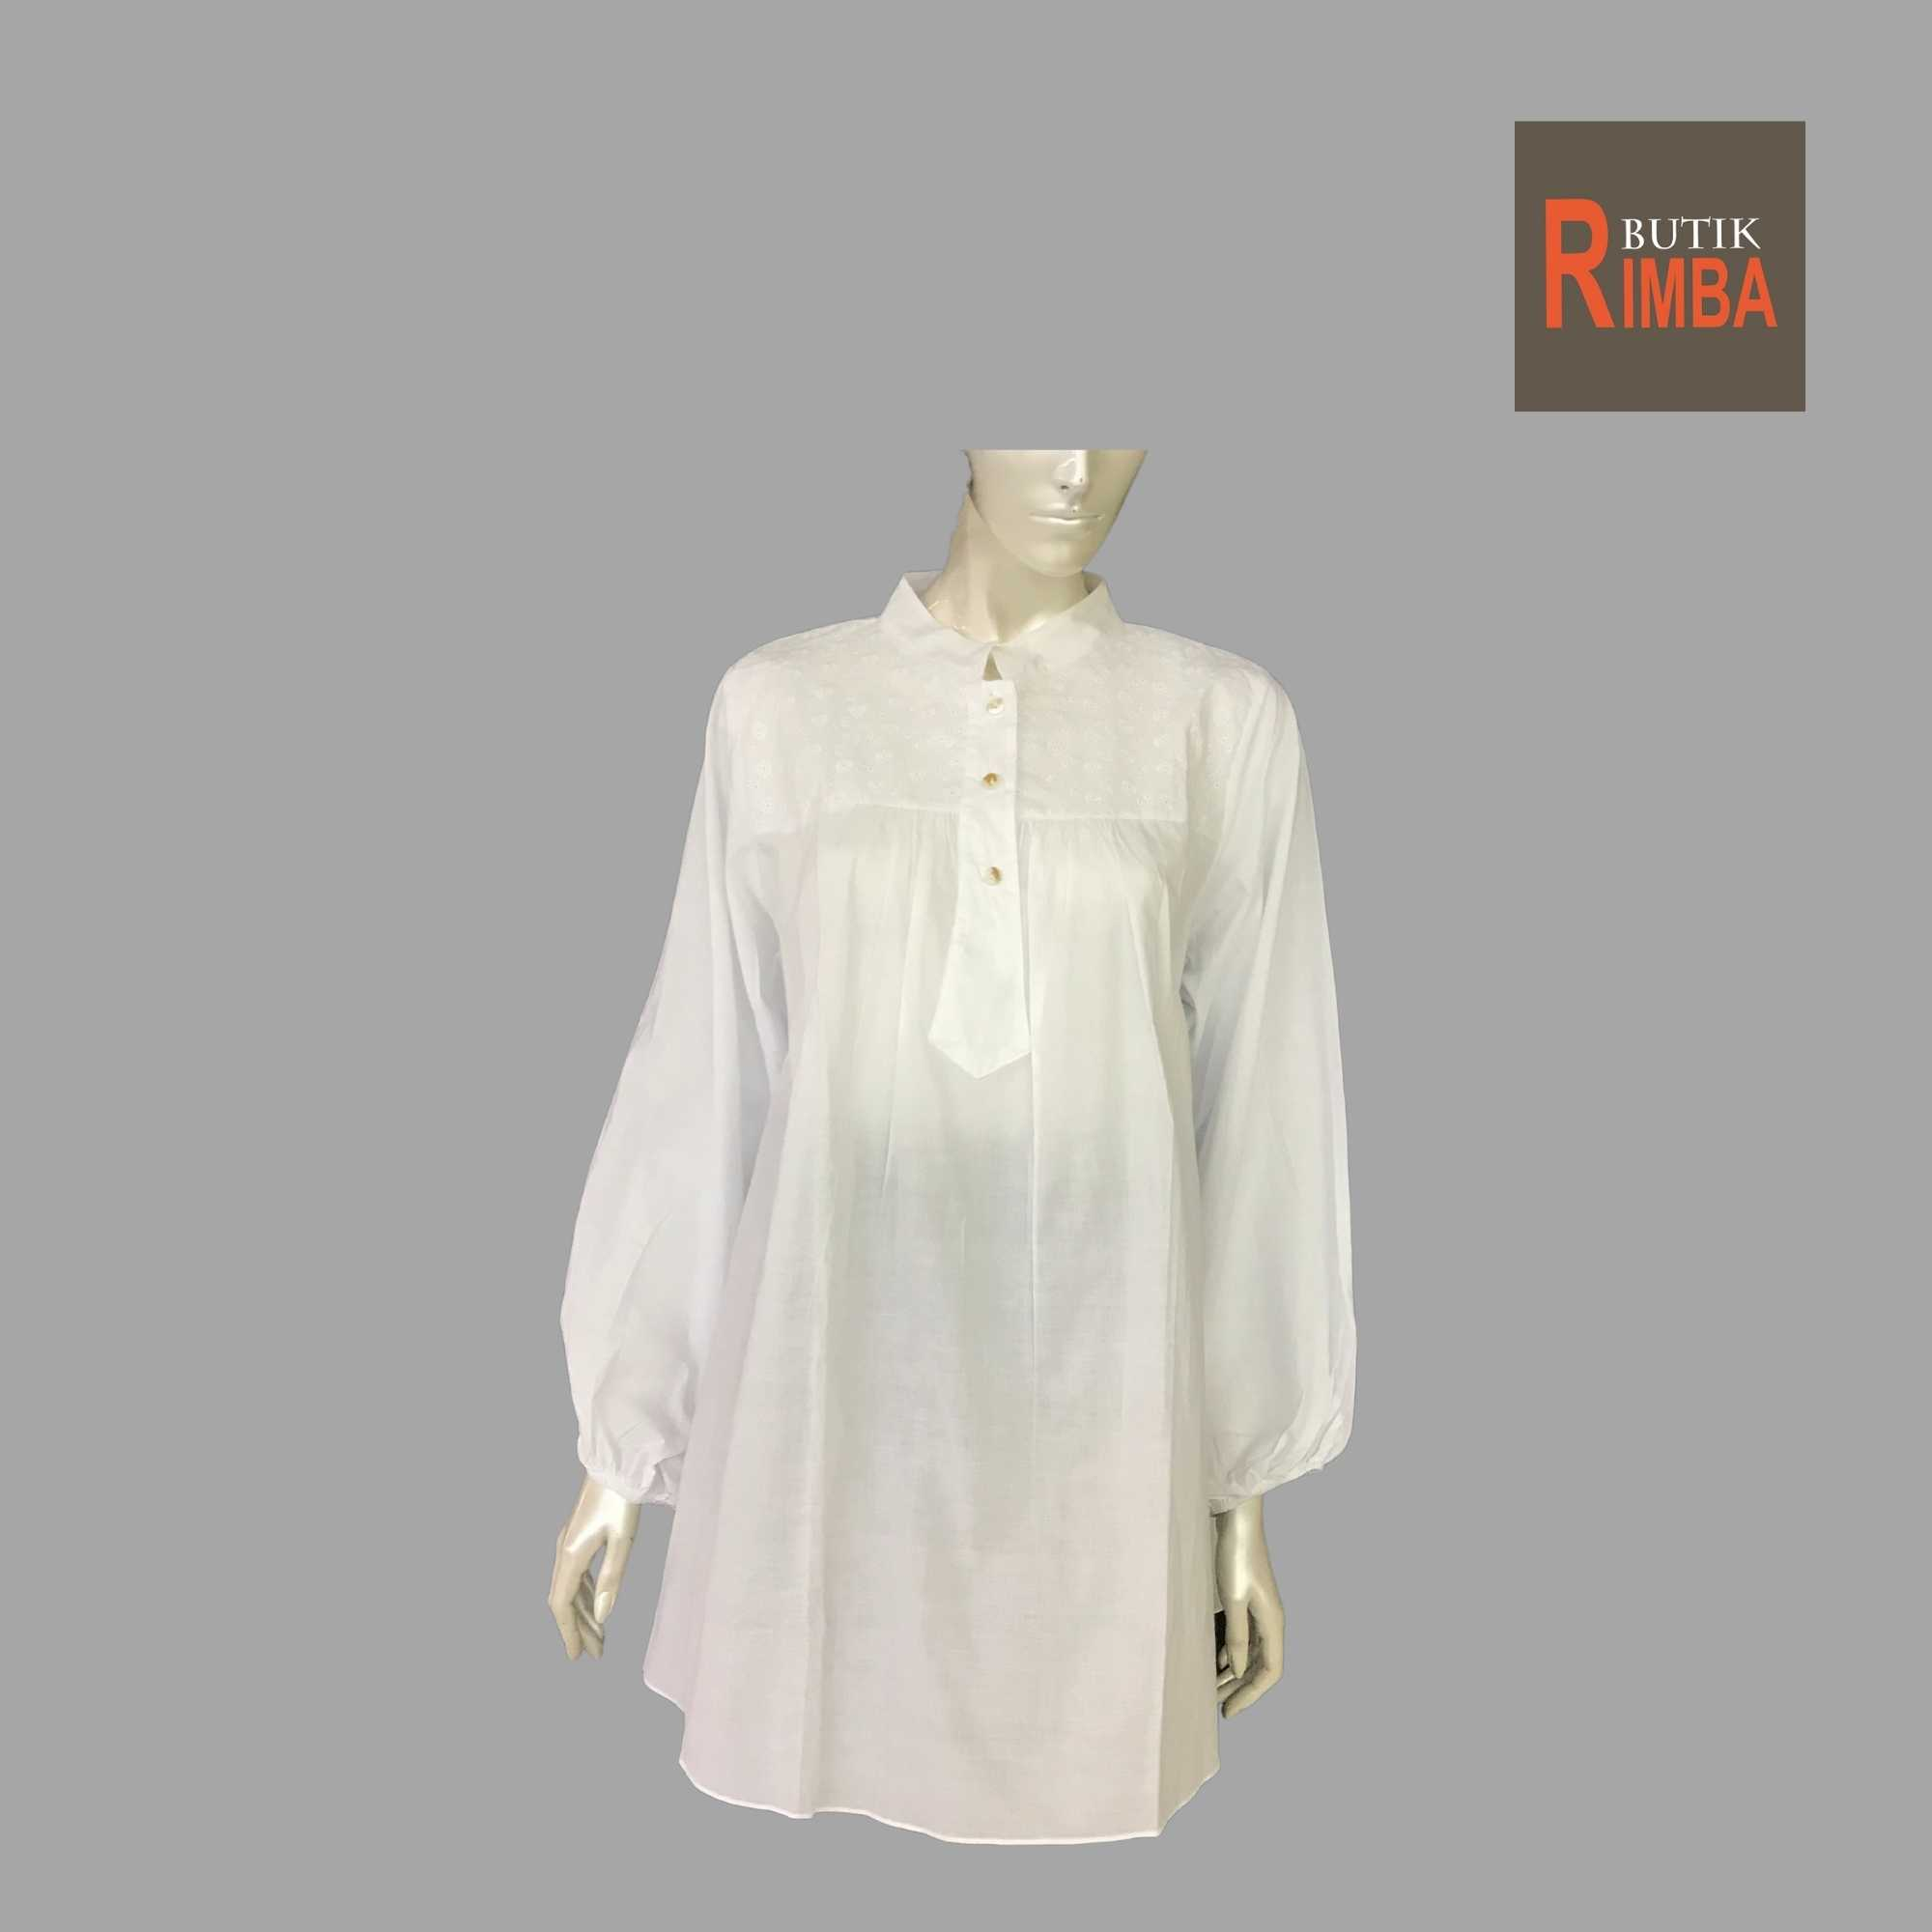 WOMEN CASUAL AND COMFORTABLE WHITE BLOUSE COTTON FREE SIZE PATTERN 07